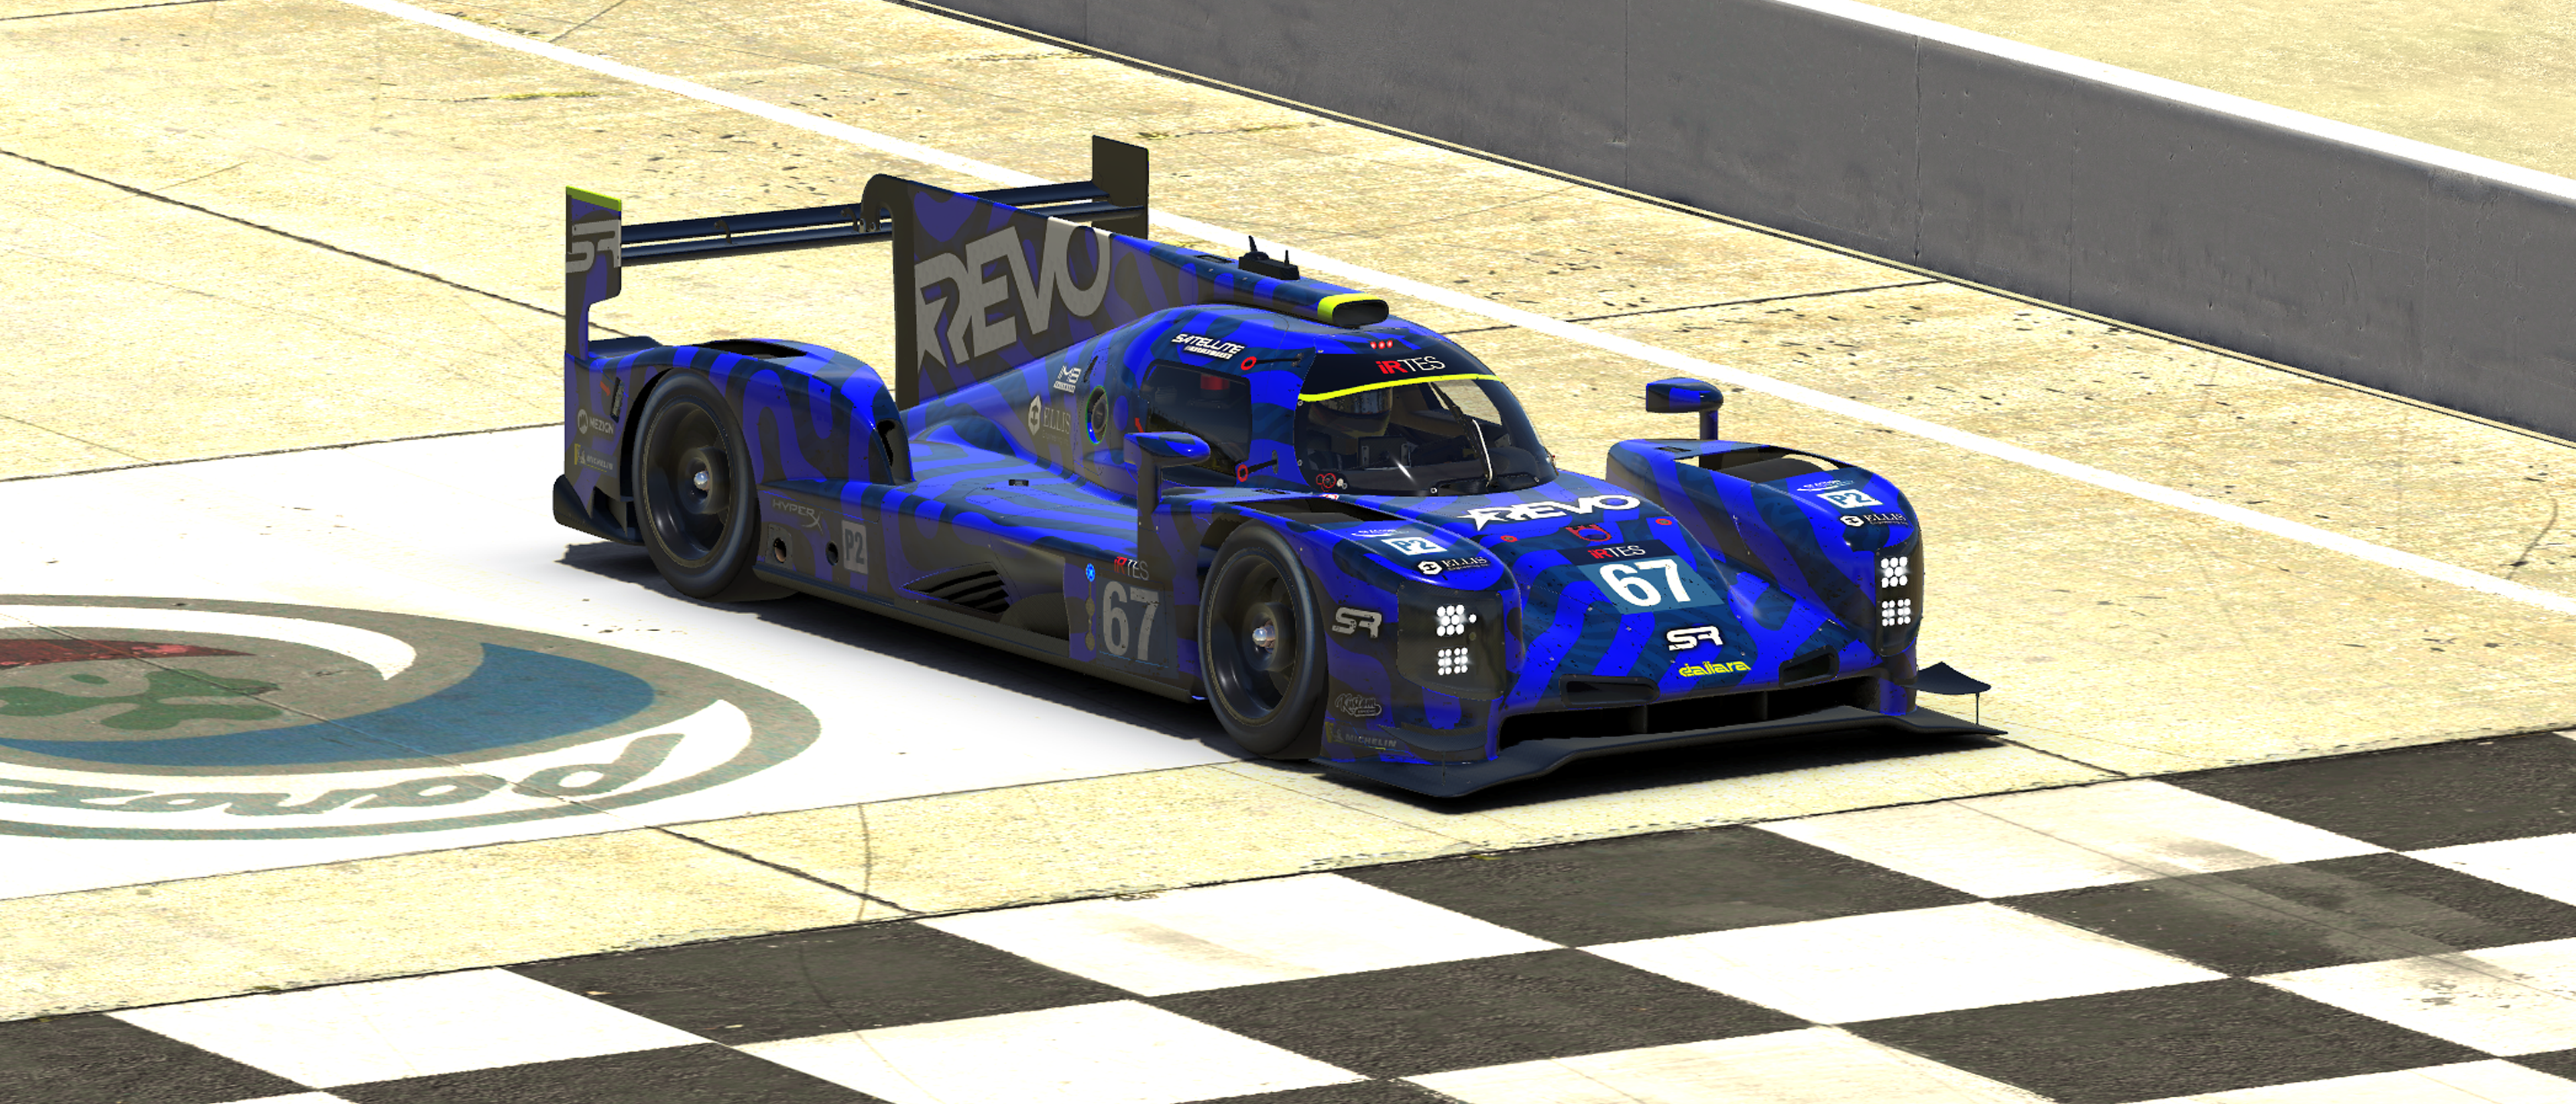 The LMP2 winning team of REVO Satellite Racing